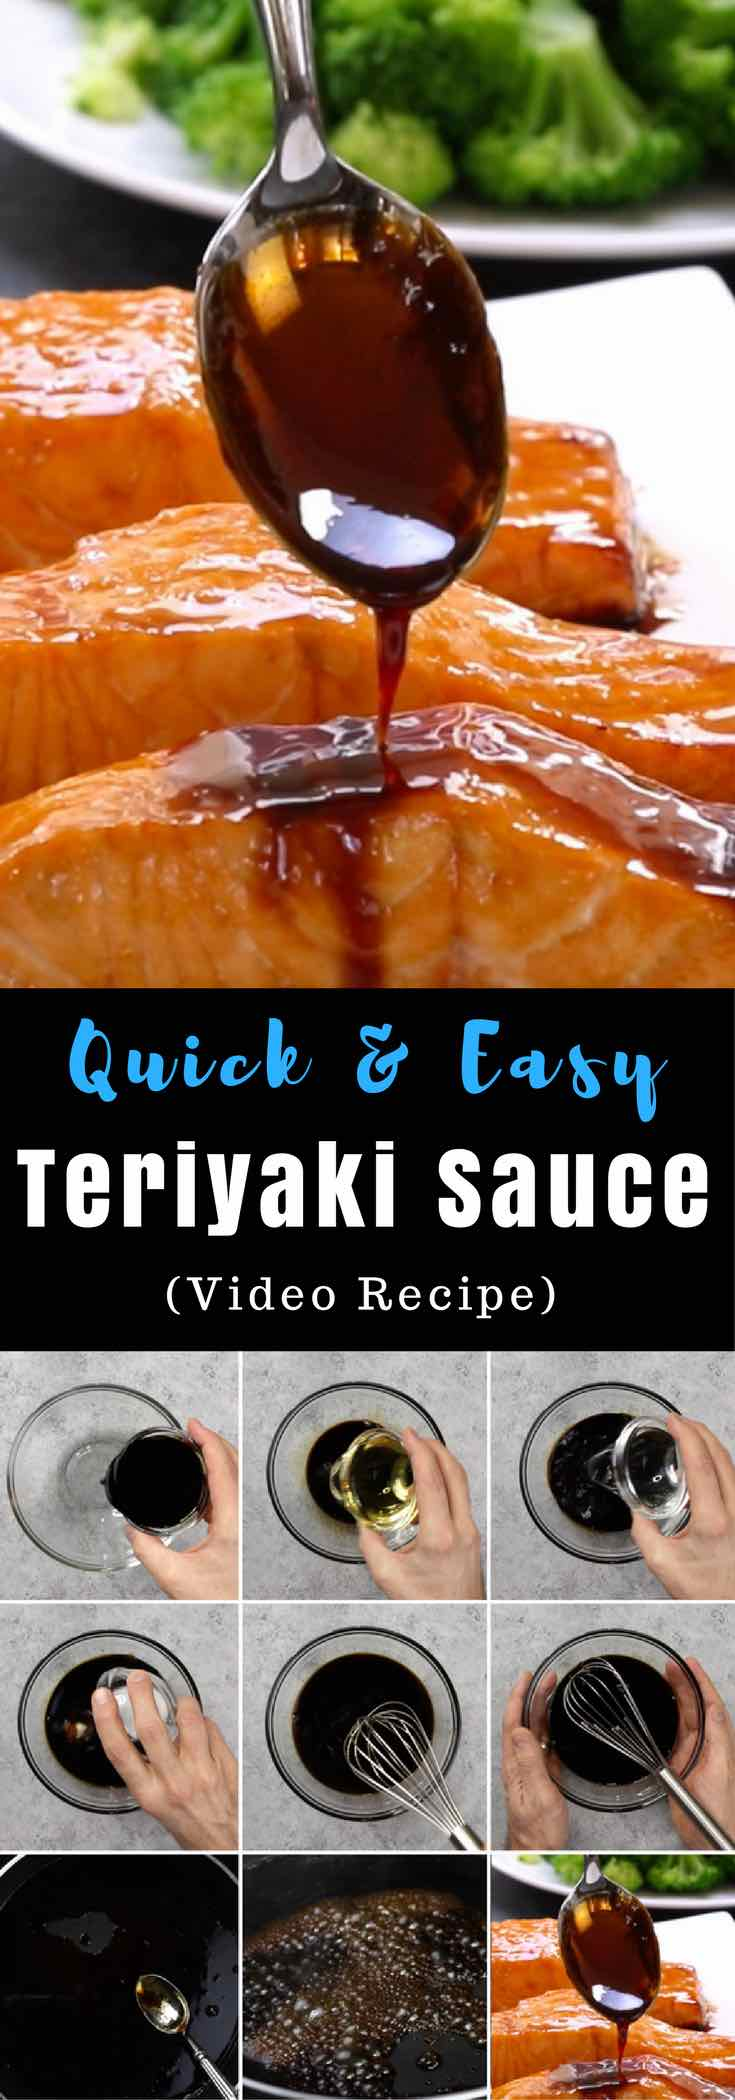 This homemade Teriyaki Sauce is so much better than store-bought bottled sauce or the teriyaki sauce you get from your favorite takeout restaurant. It's sweet and sticky, perfect for stir frying, grilling and baking.